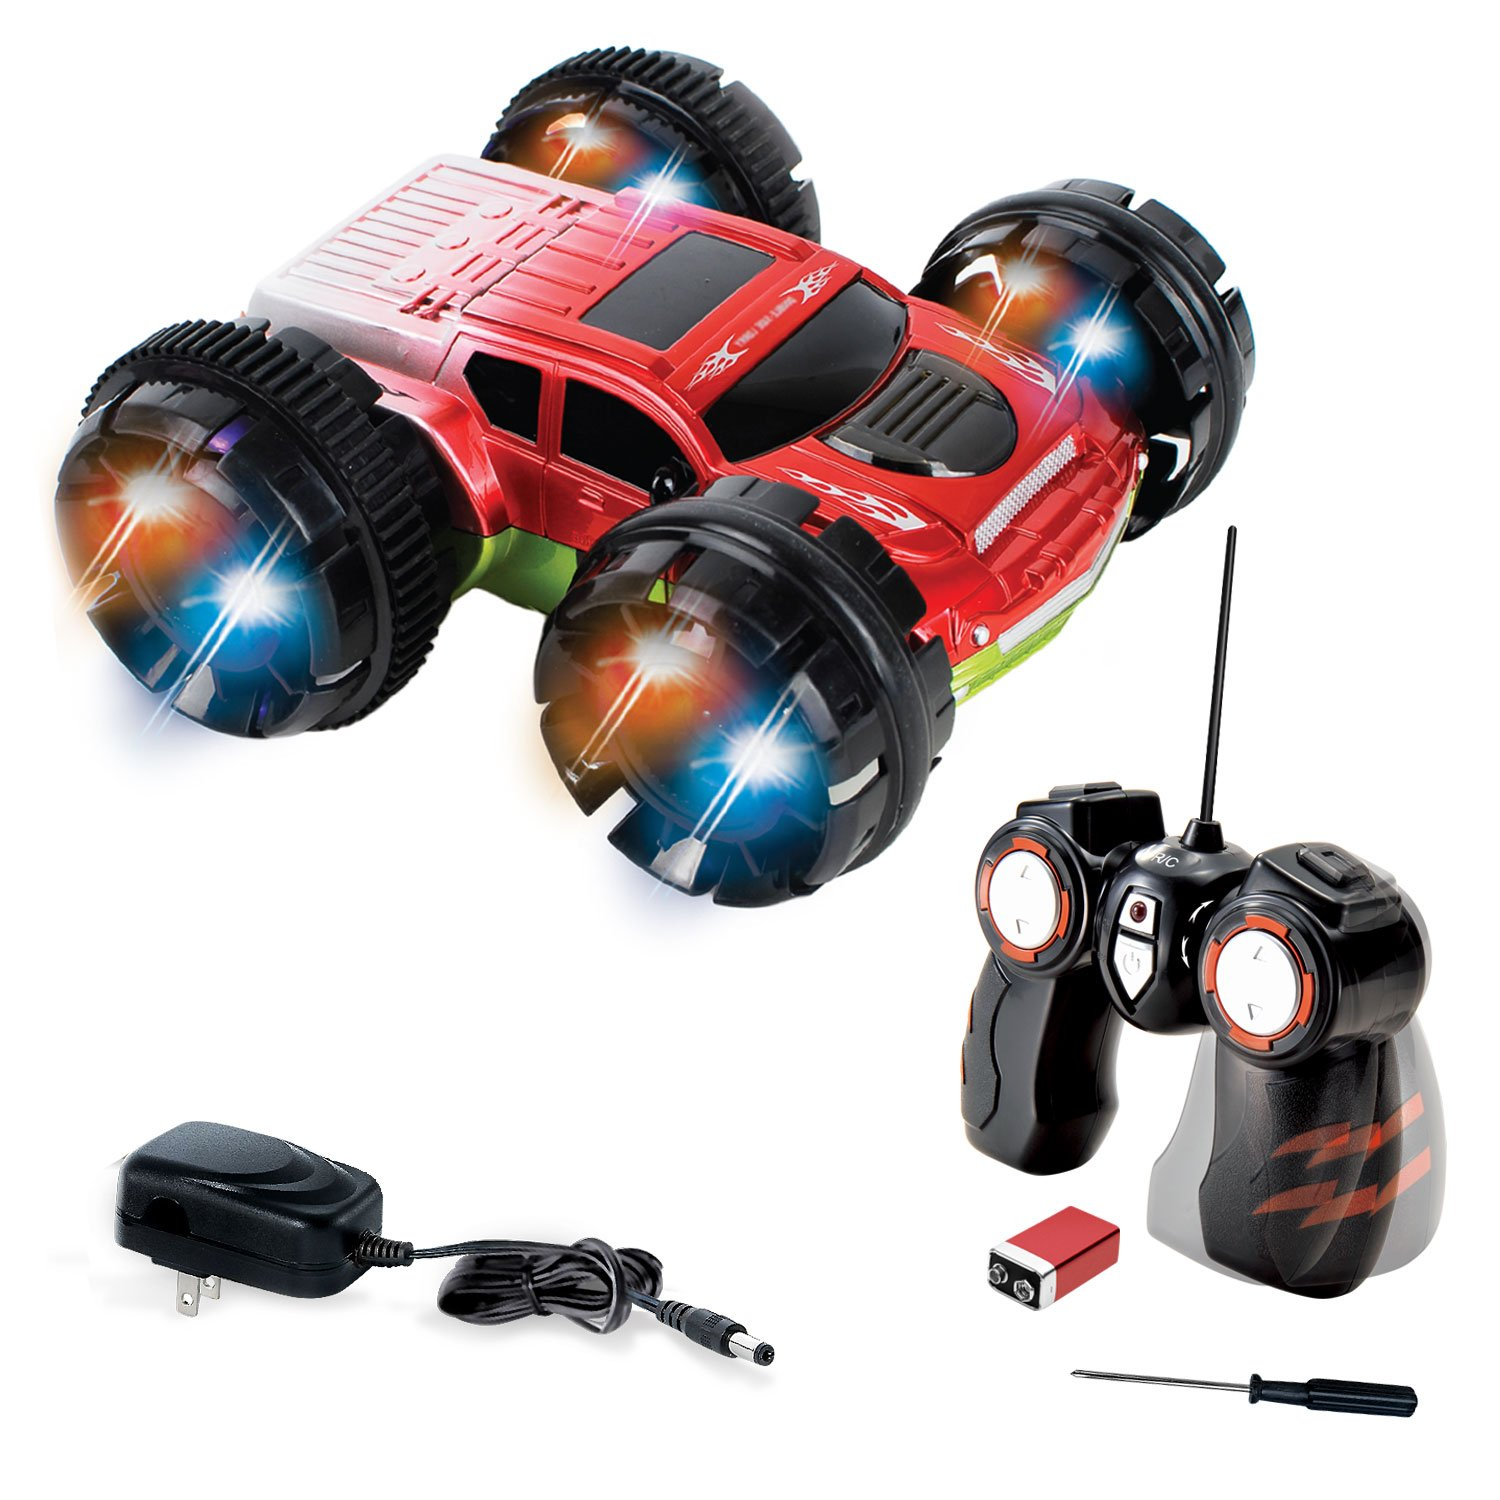 Kidirace Stunt Car 360 Degree Spinning And Flips Double Sided Remote Control .. 12